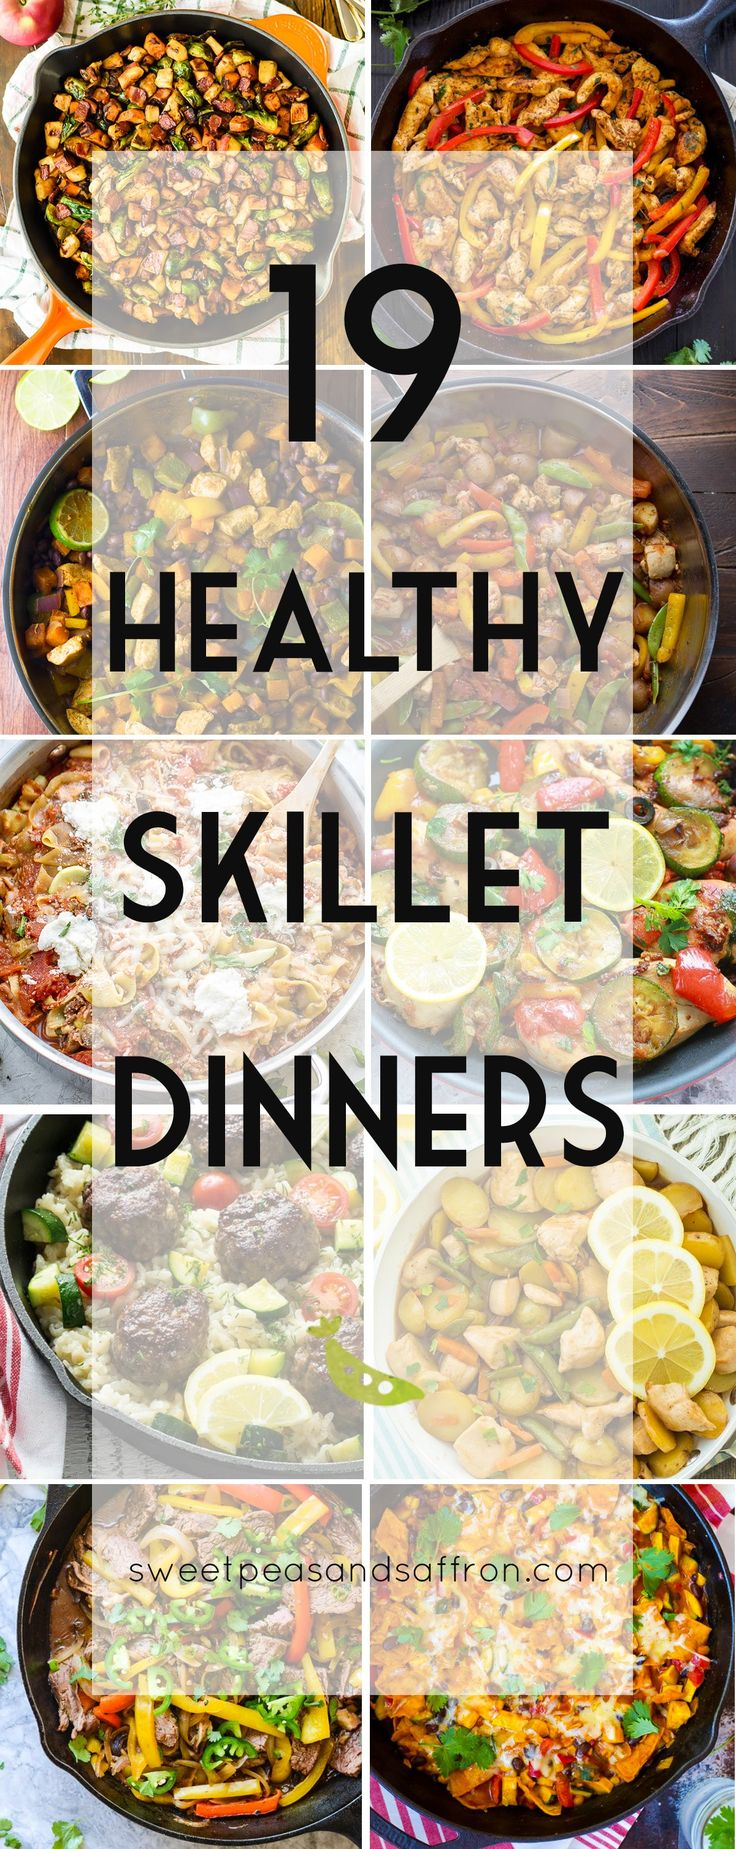 Make the 5-pm rush easy with these healthy skillet dinners. These recipes are perfect for a busy weeknight, and clean-up is a breeze!